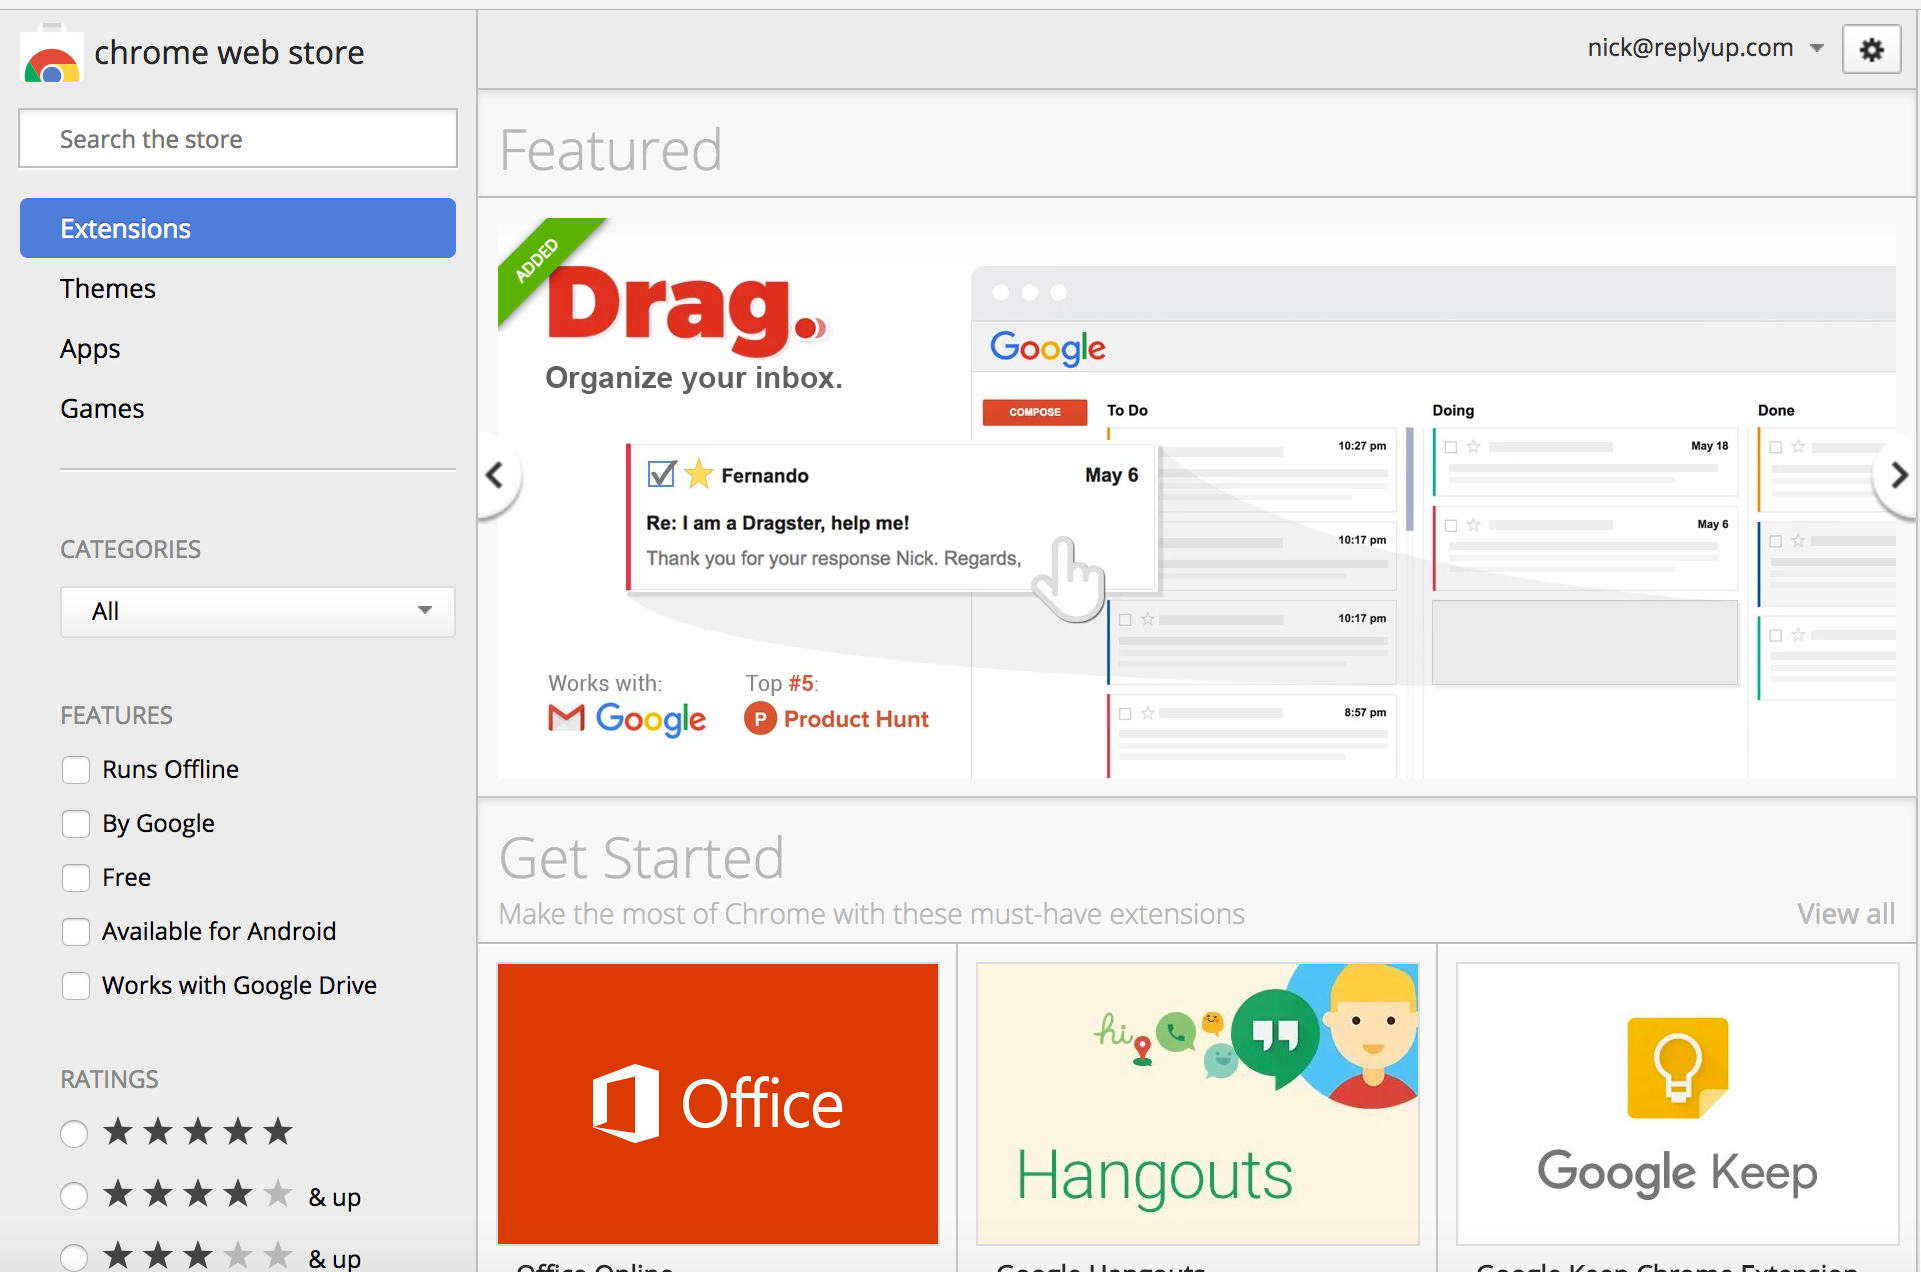 How to get featured on Google Chrome store - Drag